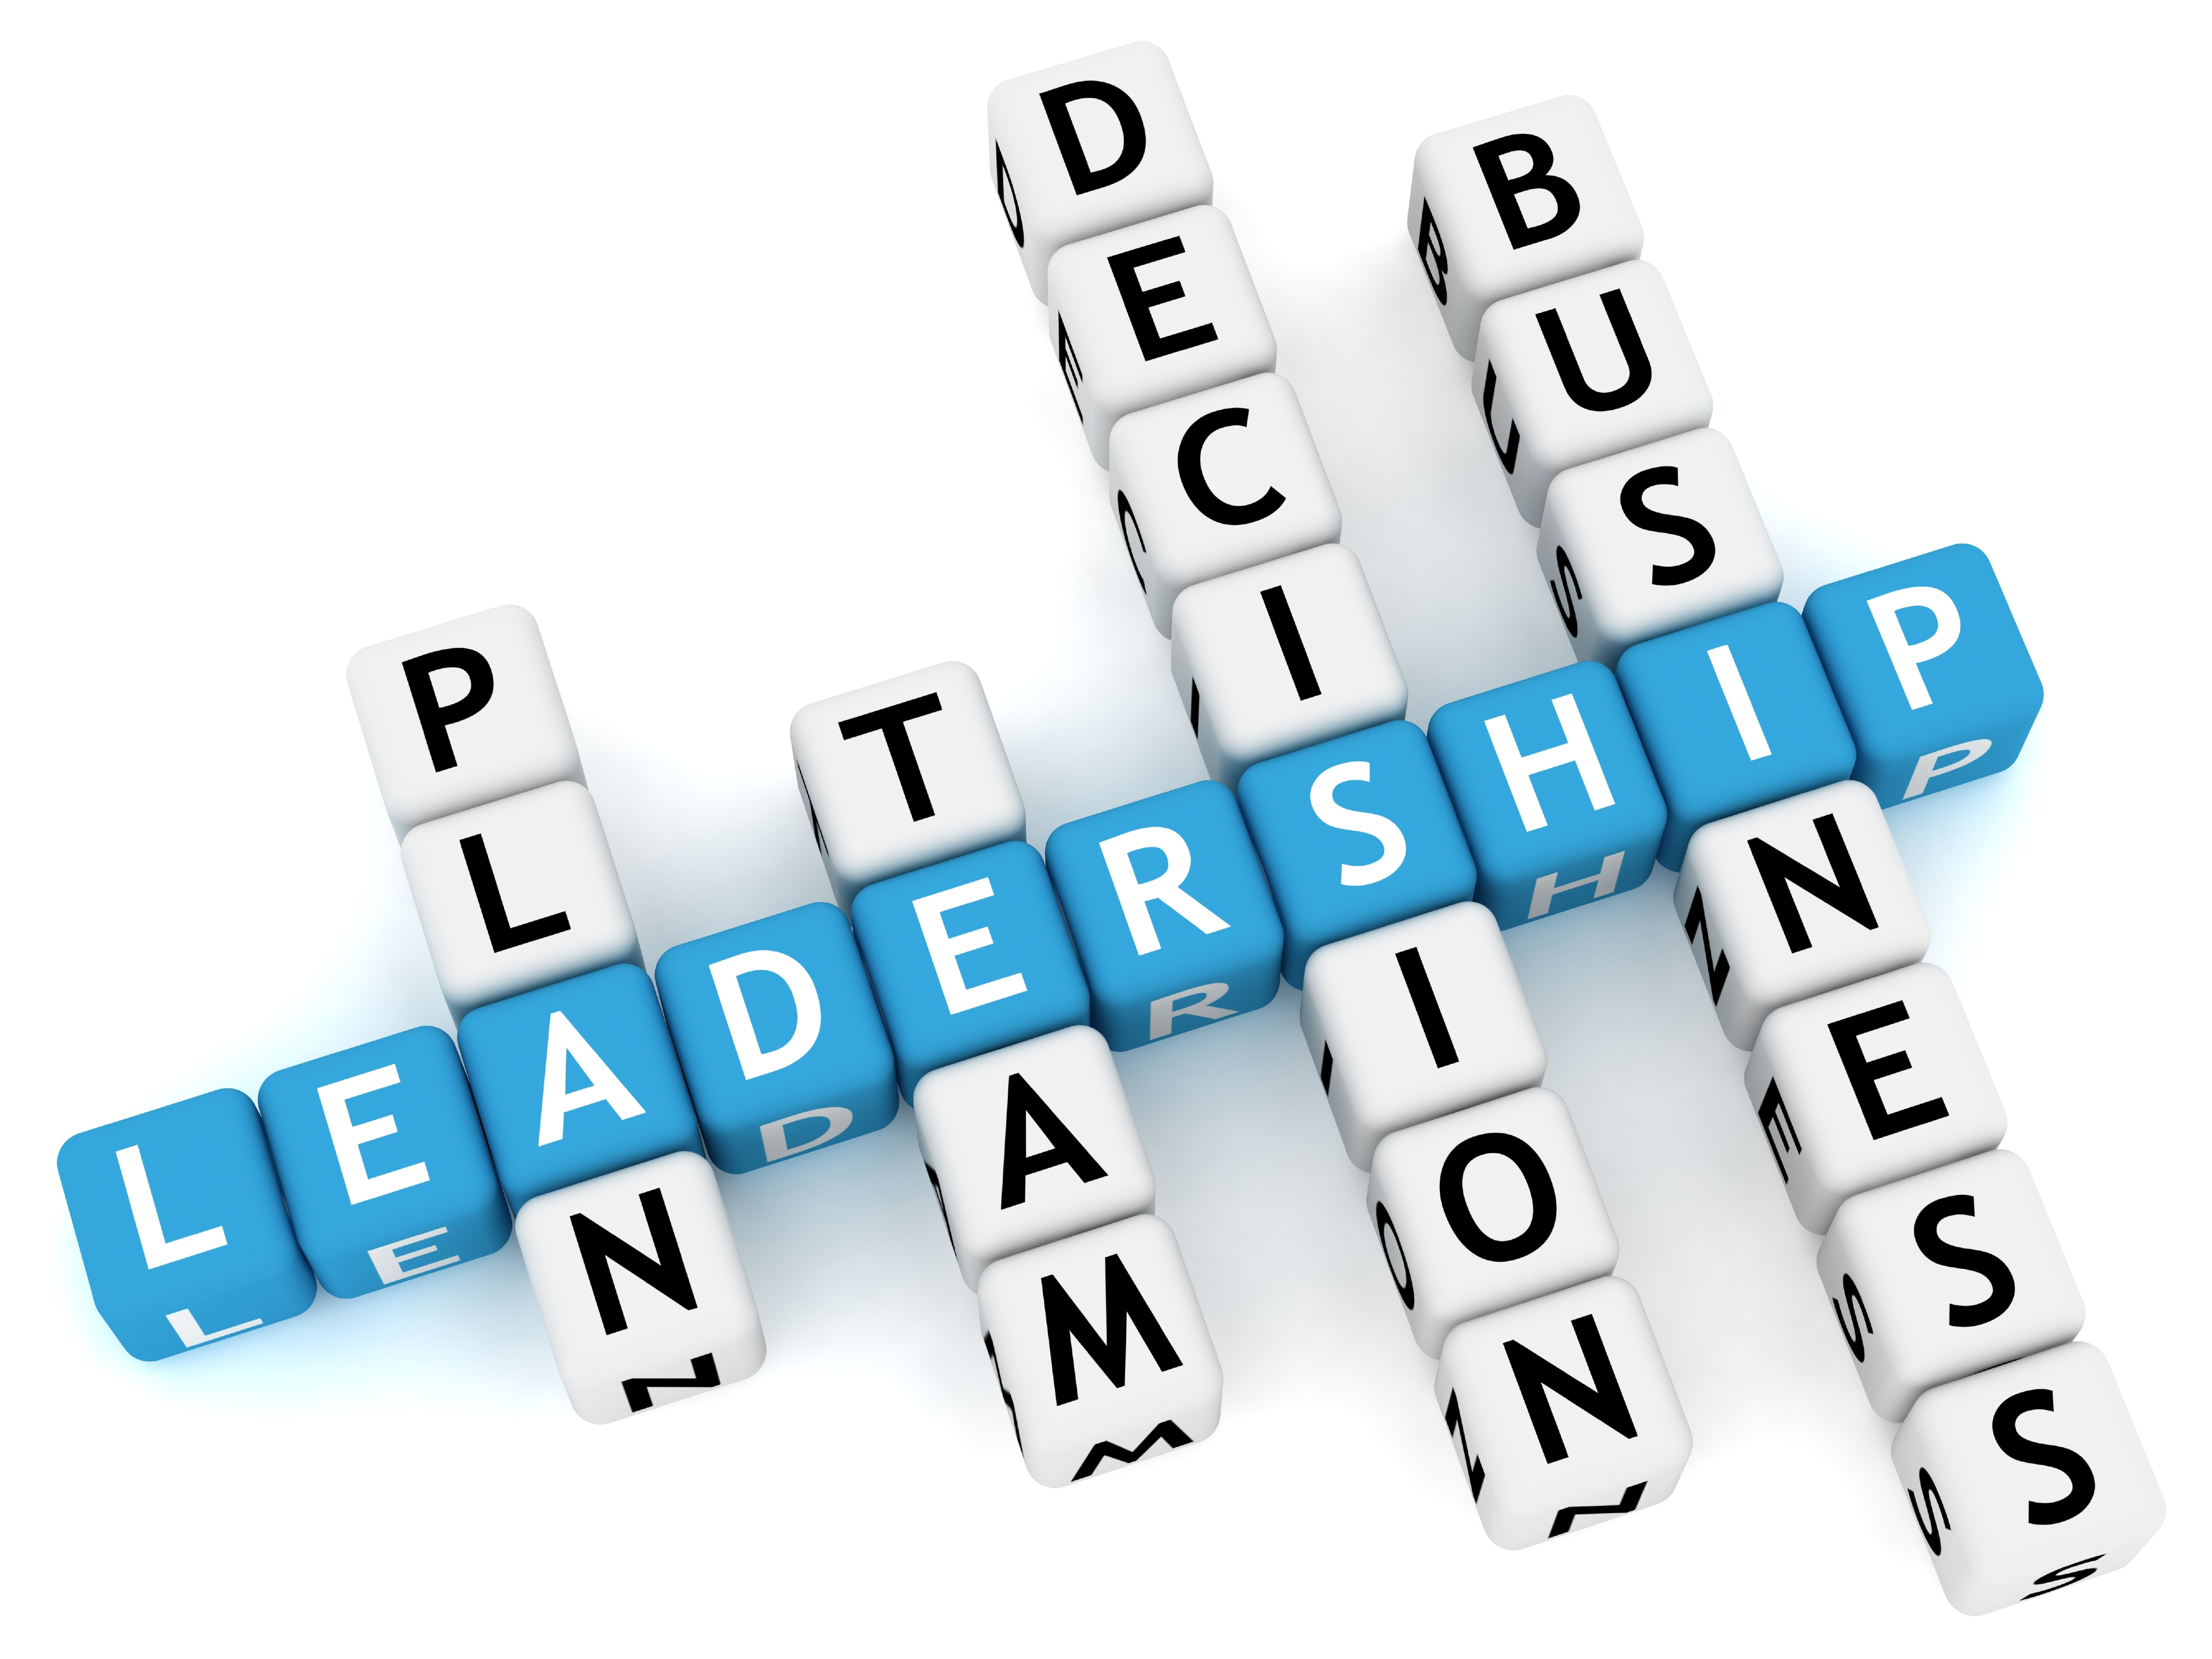 Leadership - Pan Atlantic